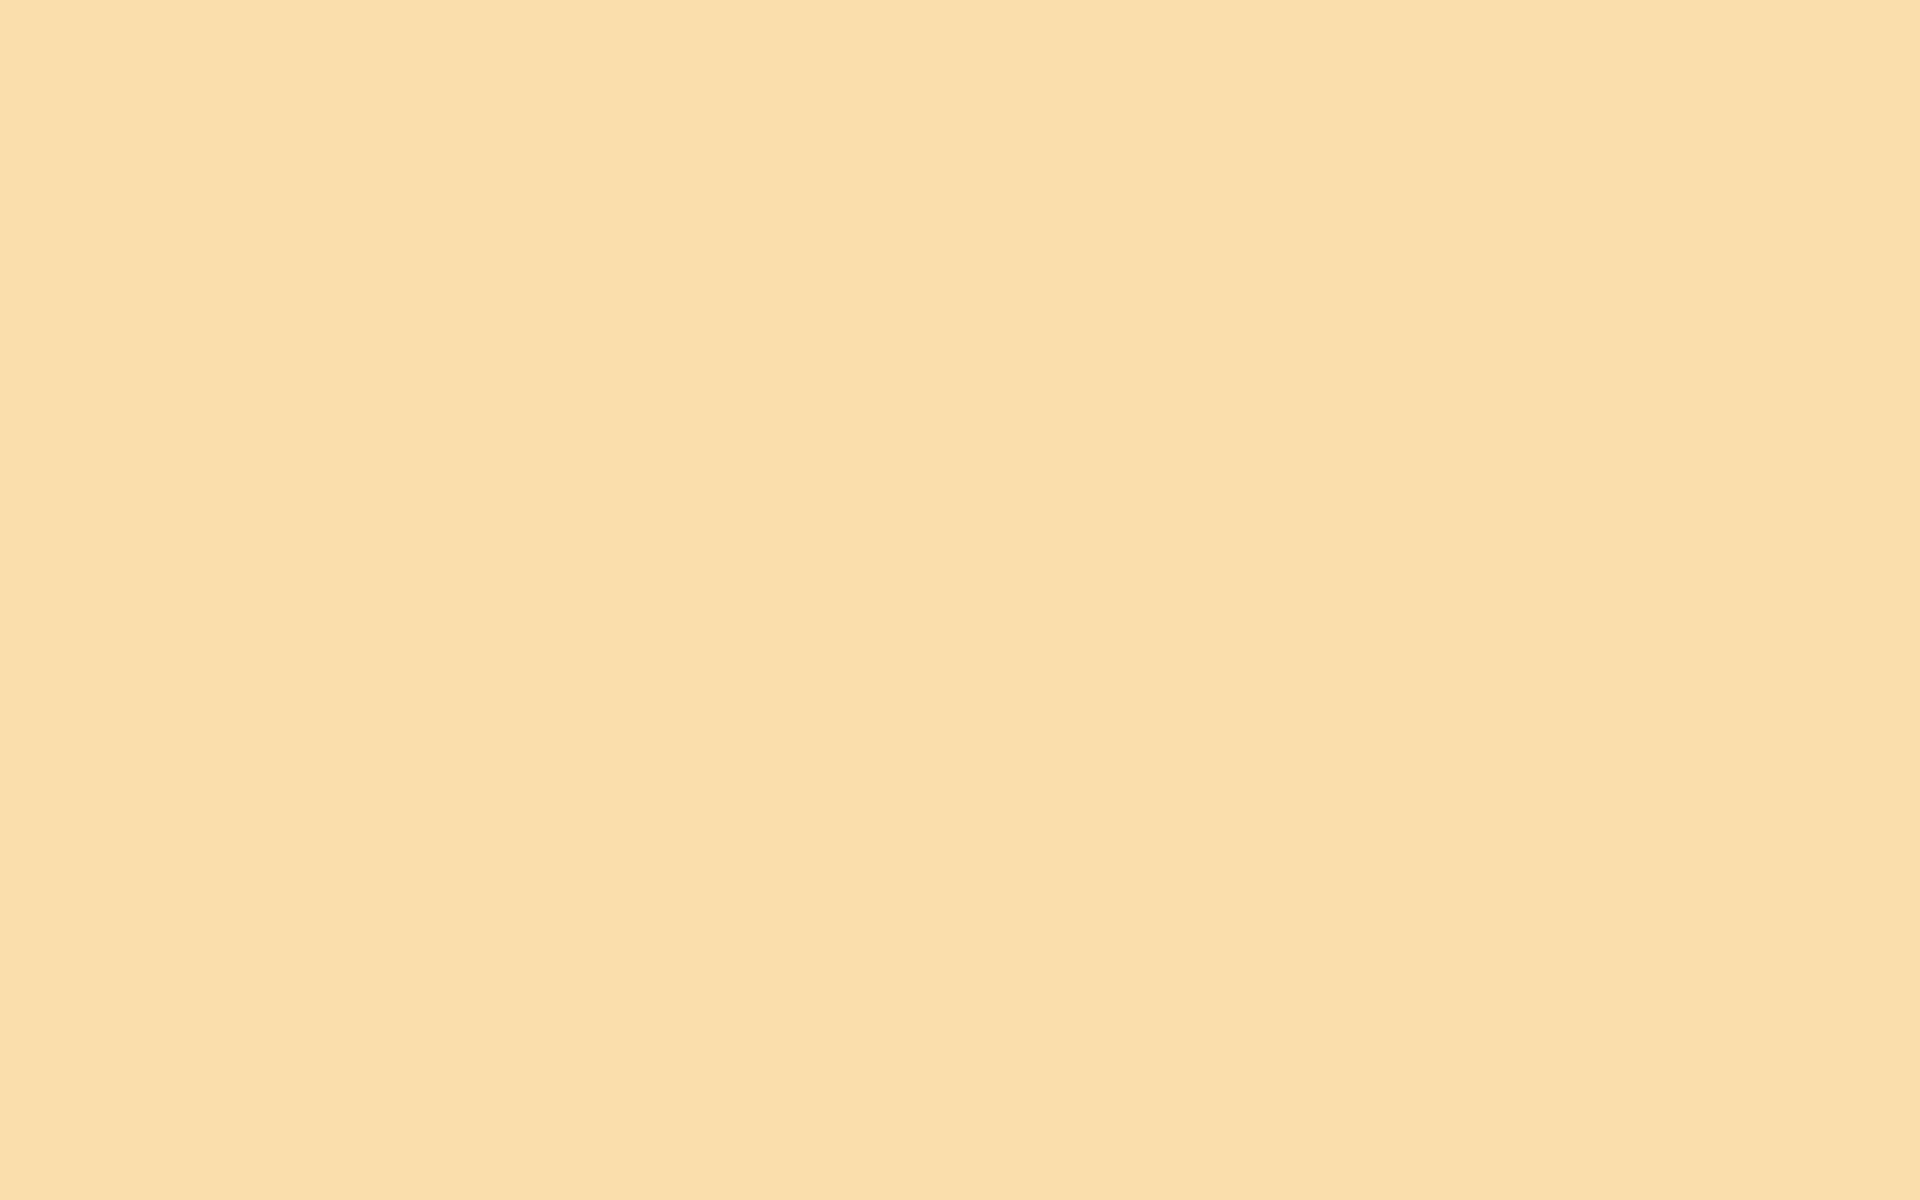 1920x1200 Peach-yellow Solid Color Background